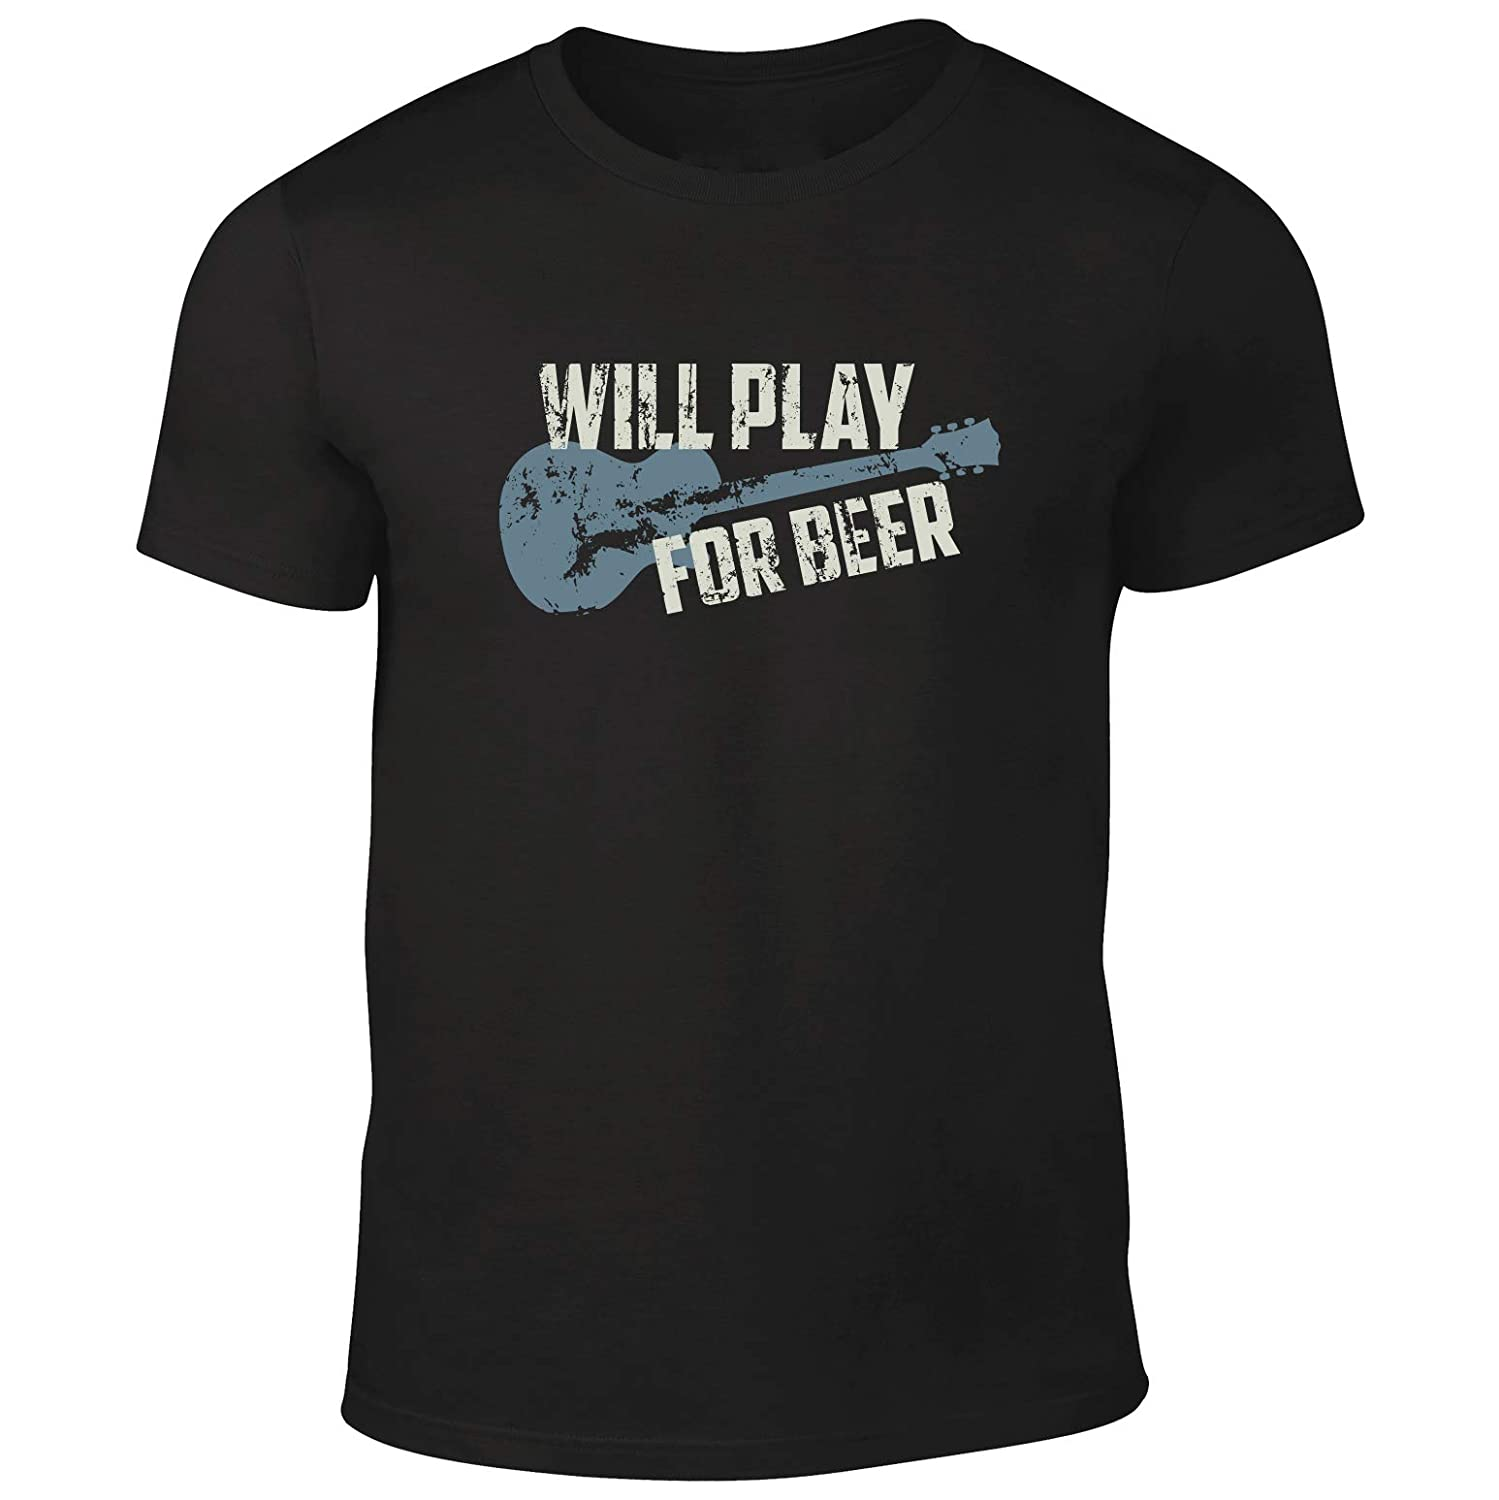 Quality Mens 'Will Play For Beer' Guitar Music T-Shirt.